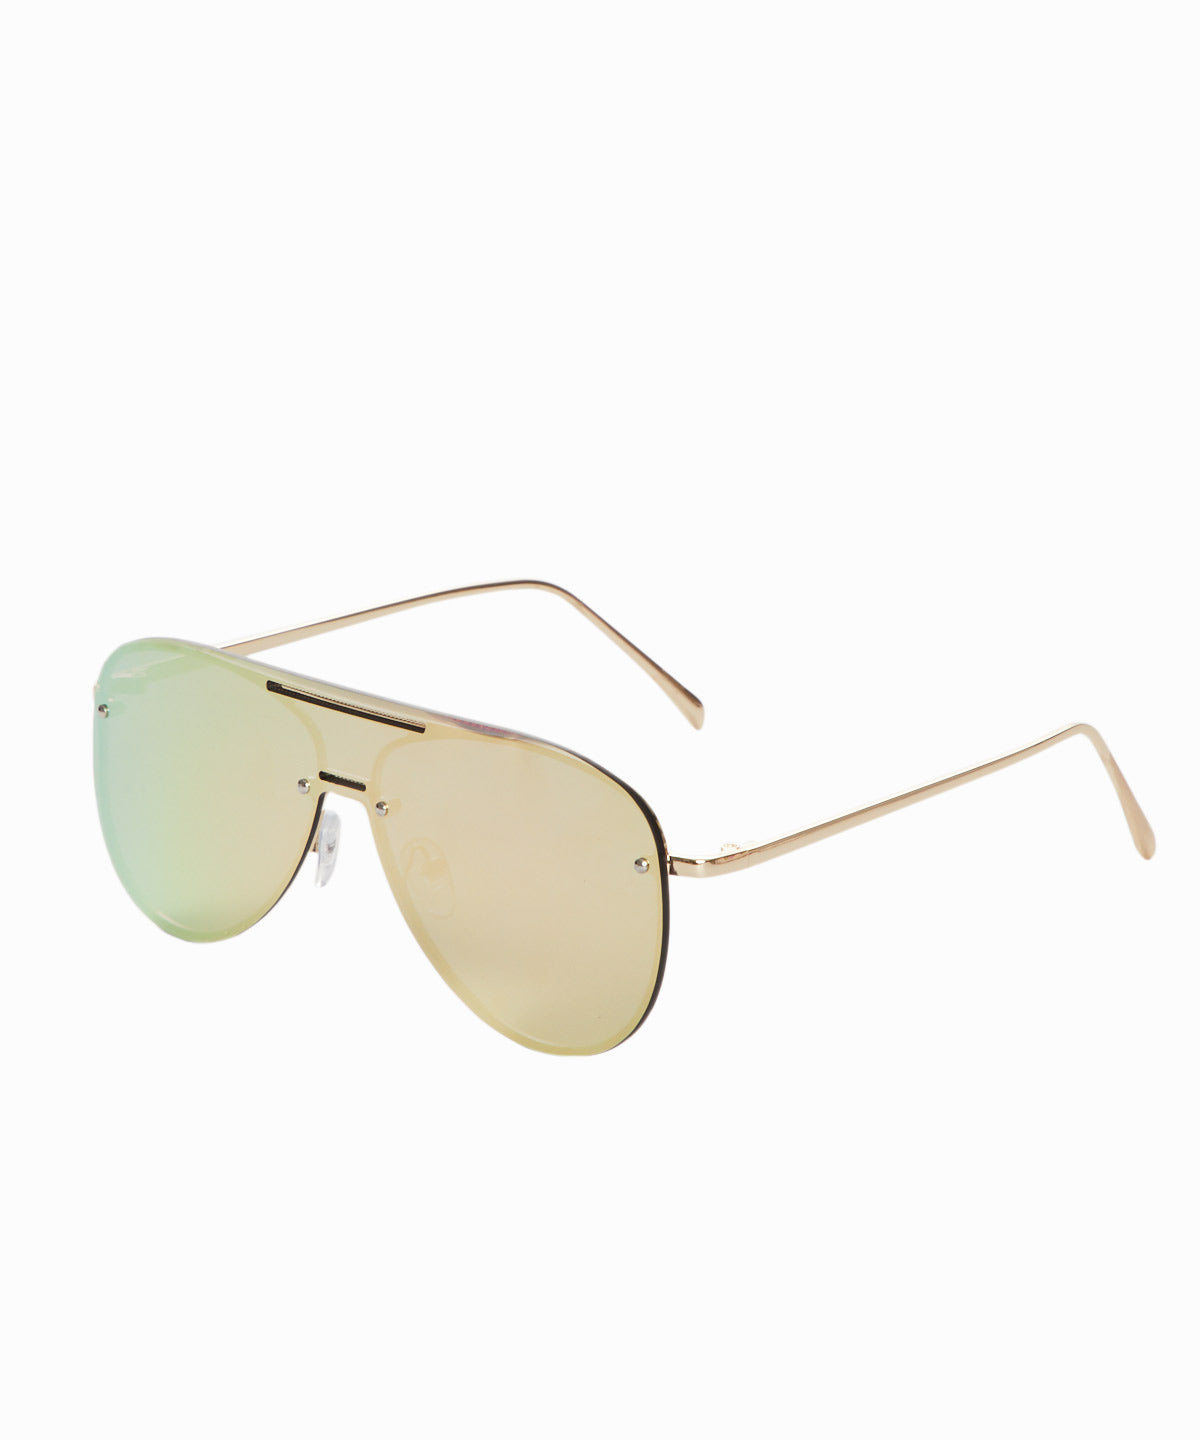 Framless Gold Lens Sunglasses